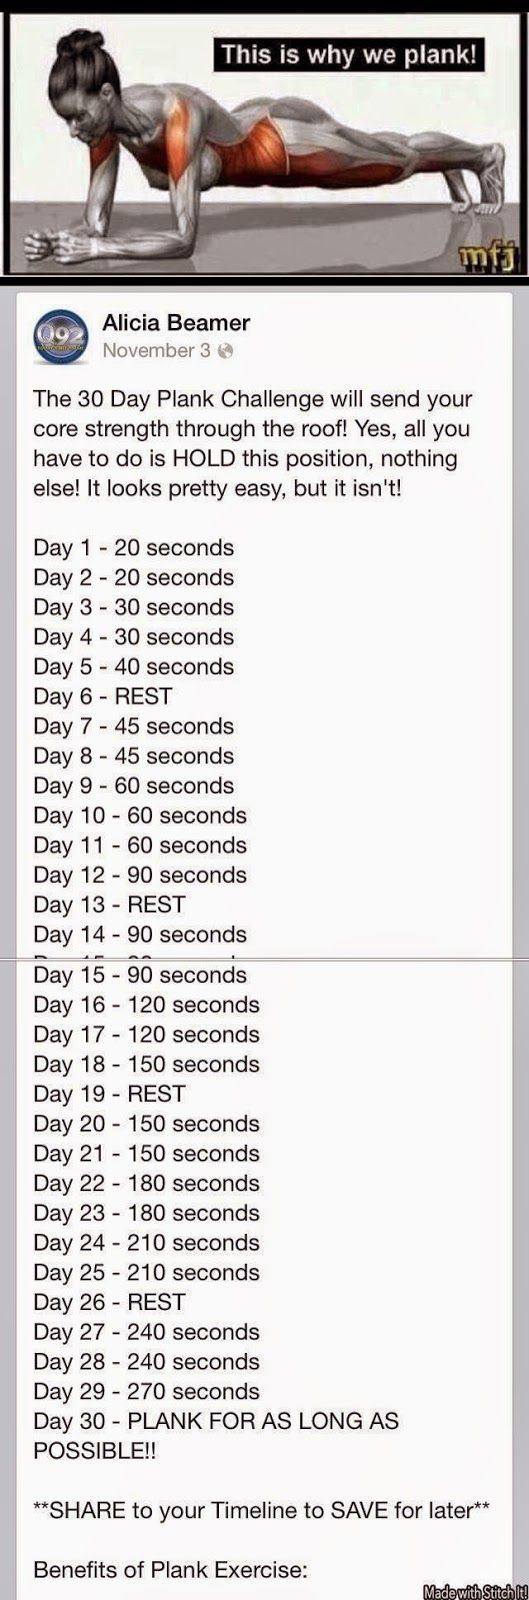 This is why we plank! 30 day challenge. This is the BEST for toning and strengthening my core.